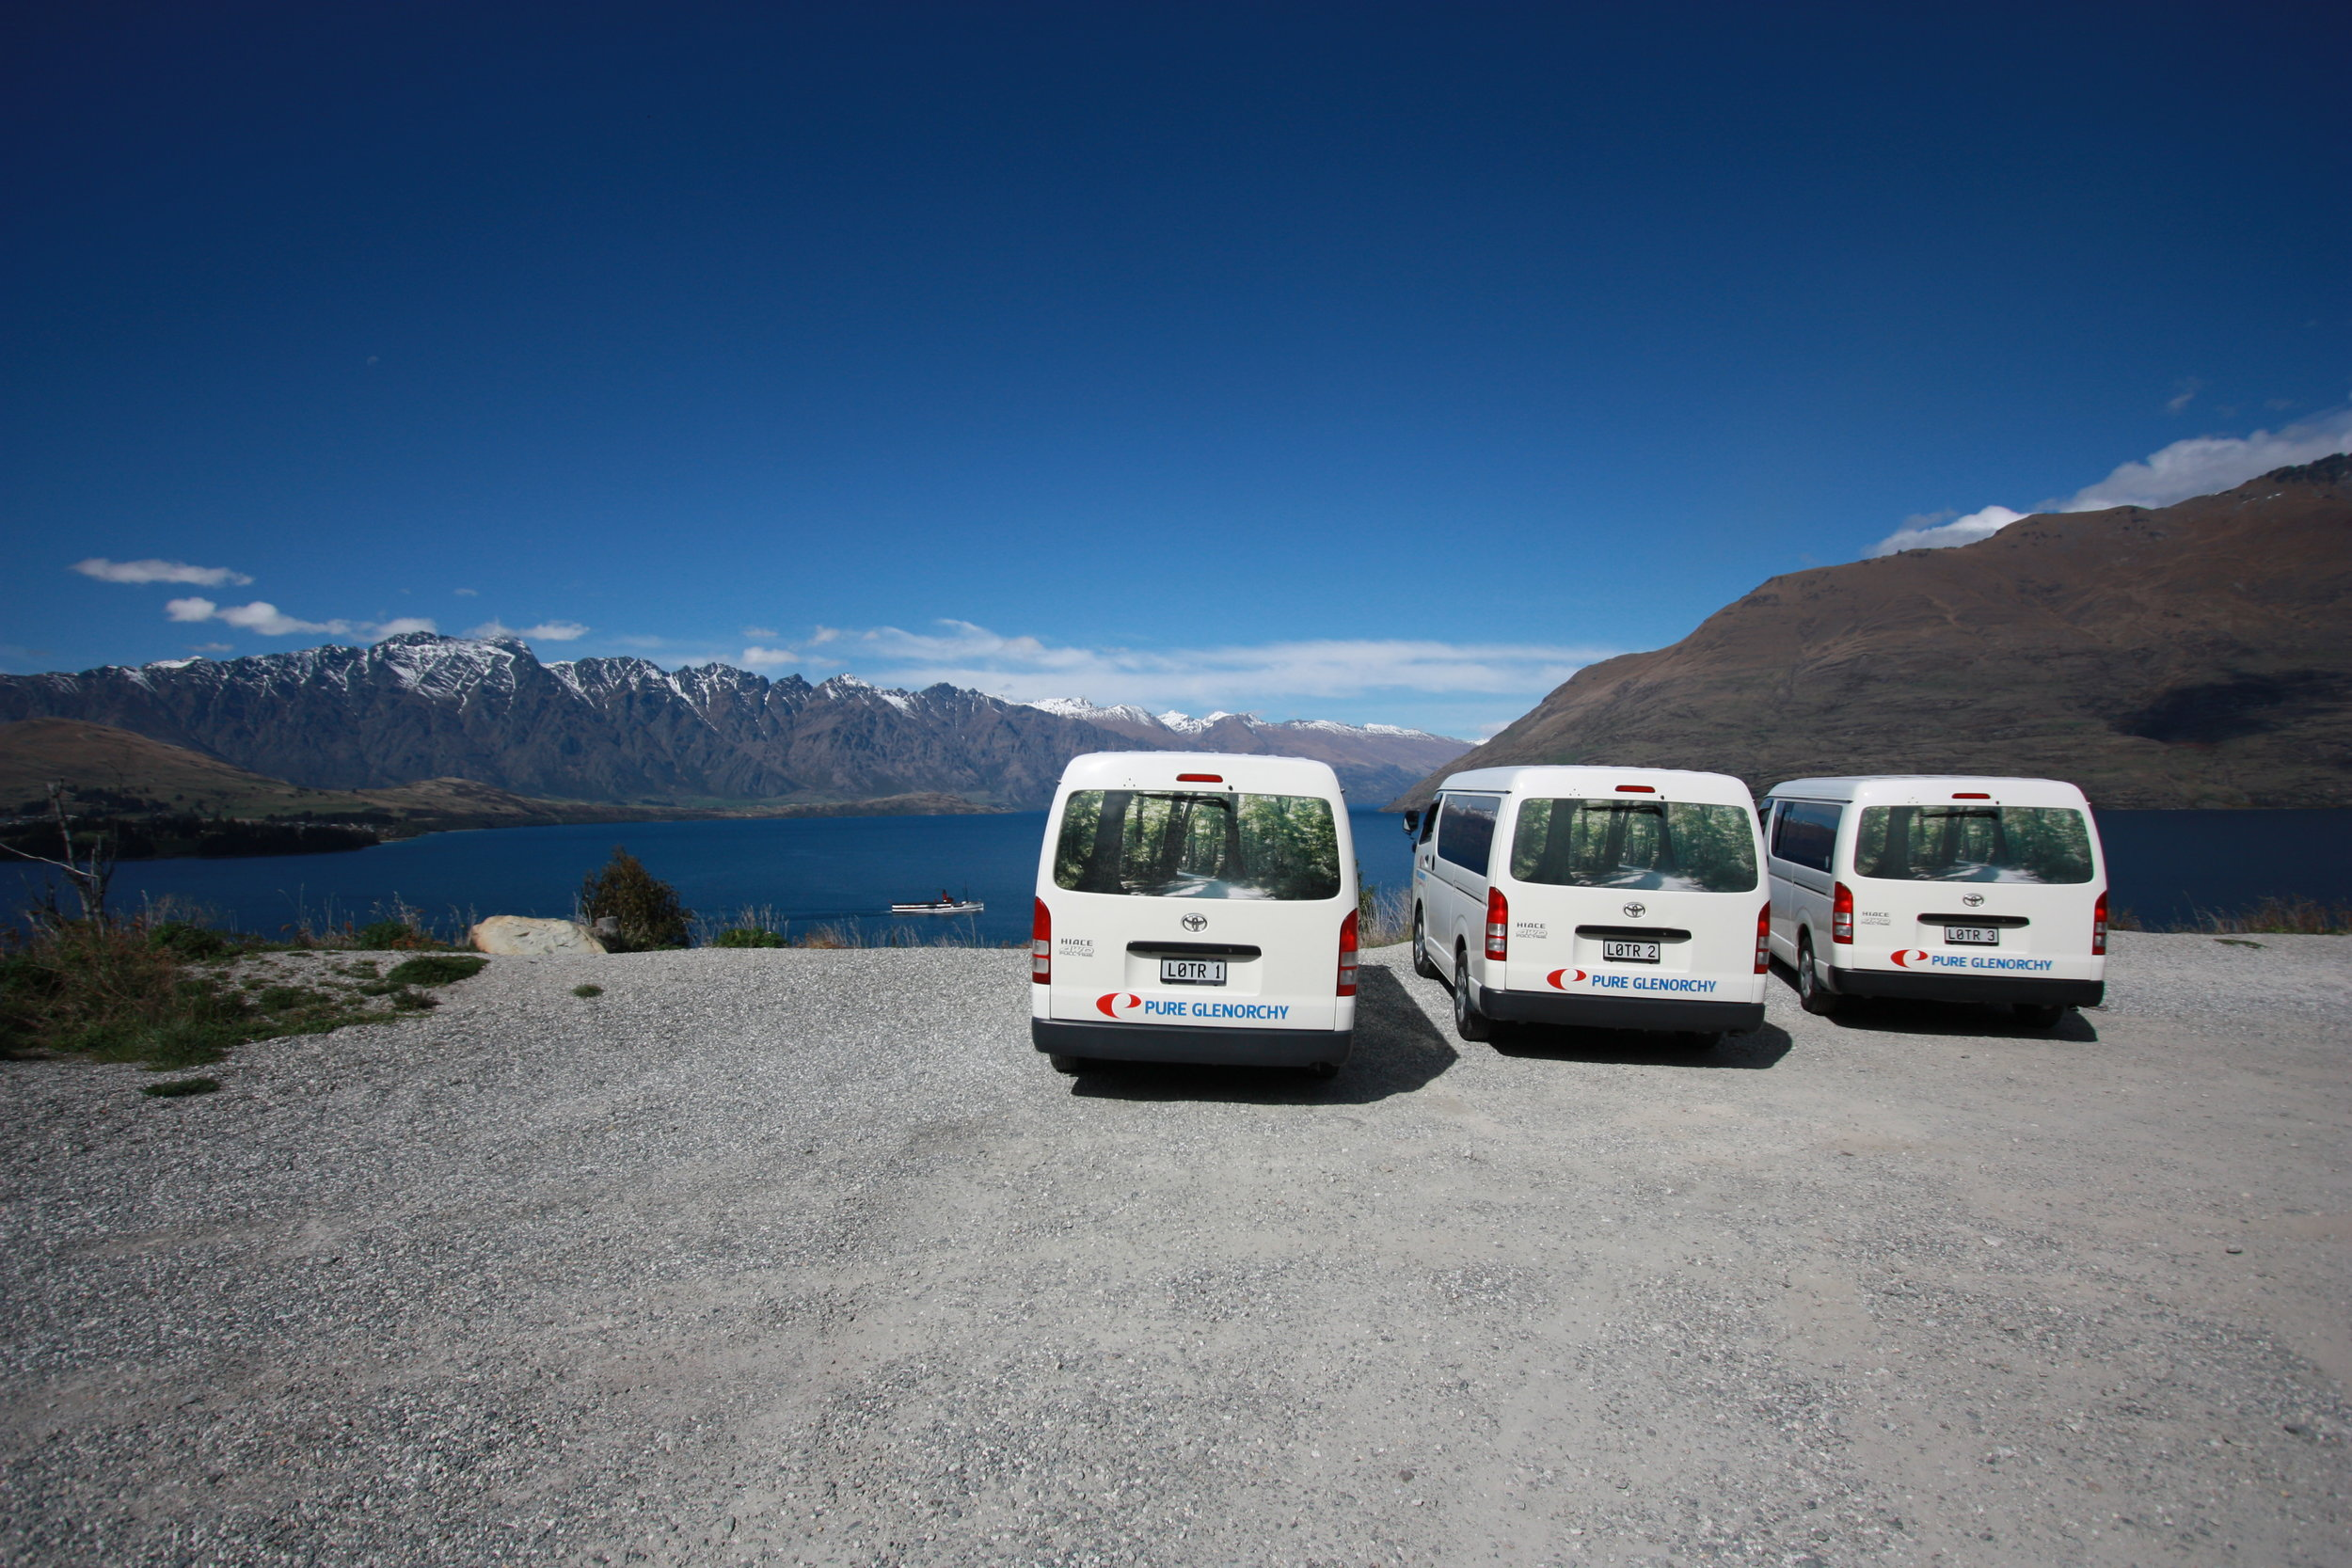 Available for large group tours to Glenorchy, Paradise and Mt Aspiring.JPG